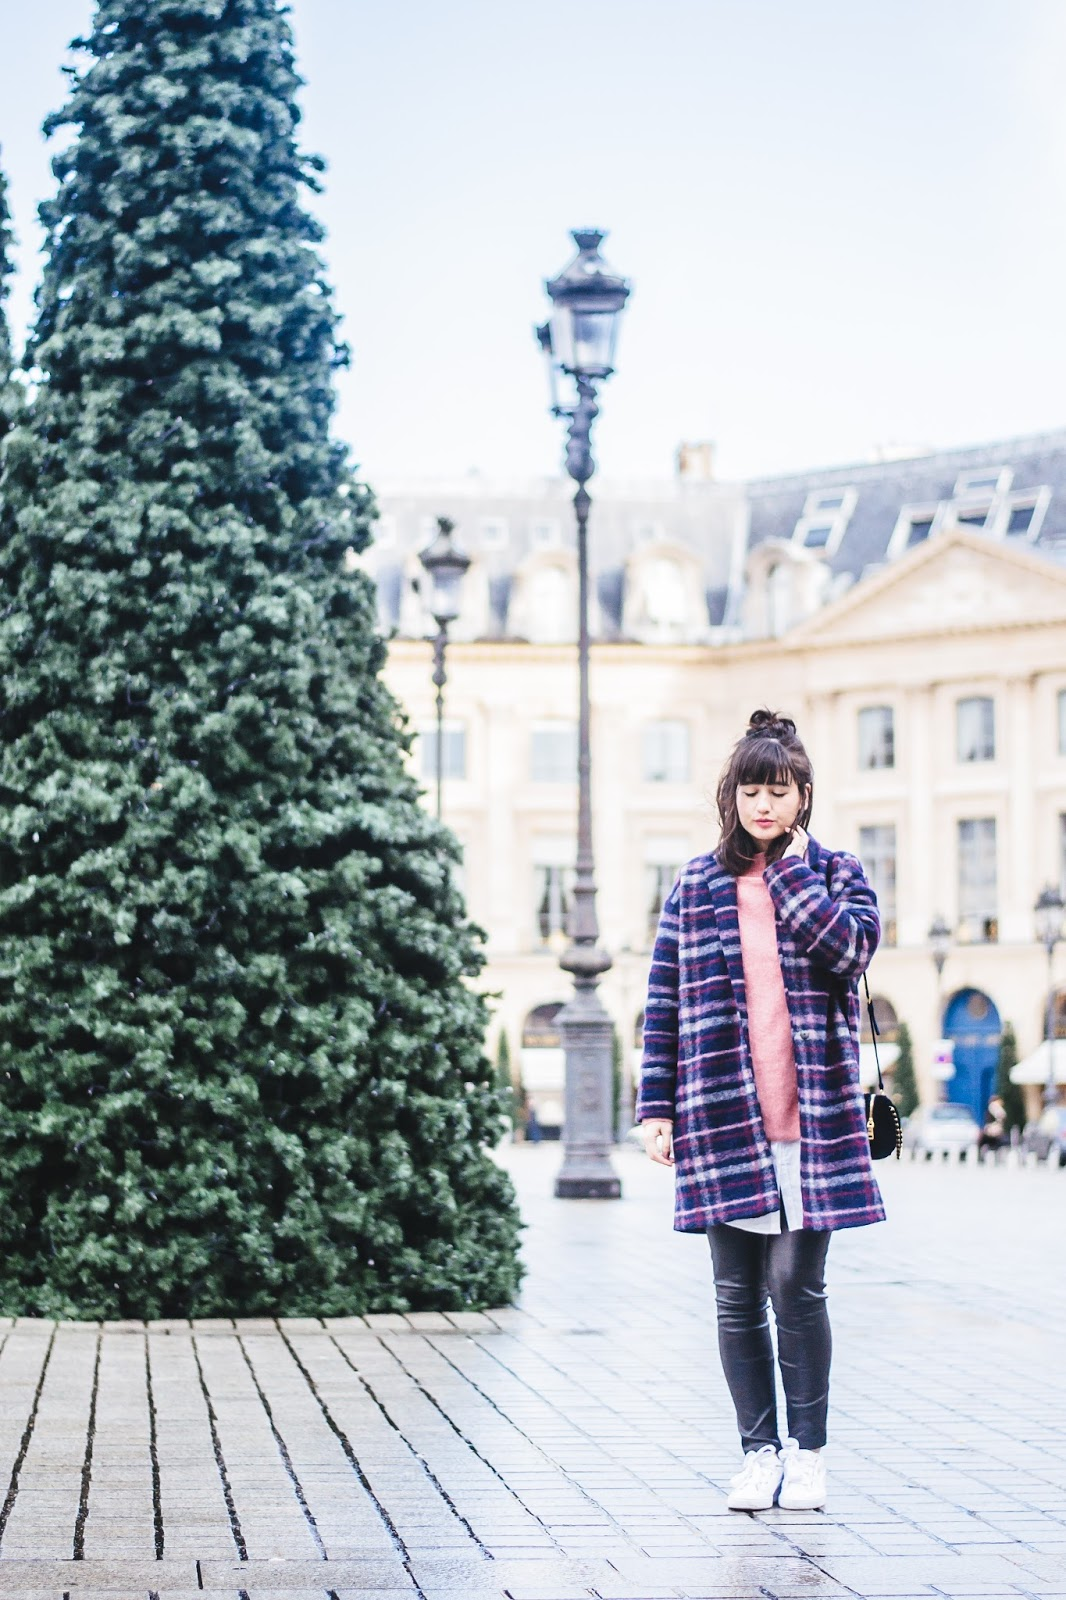 meetmeinparee-style-look-mode-fashion-paris-parisianblogger